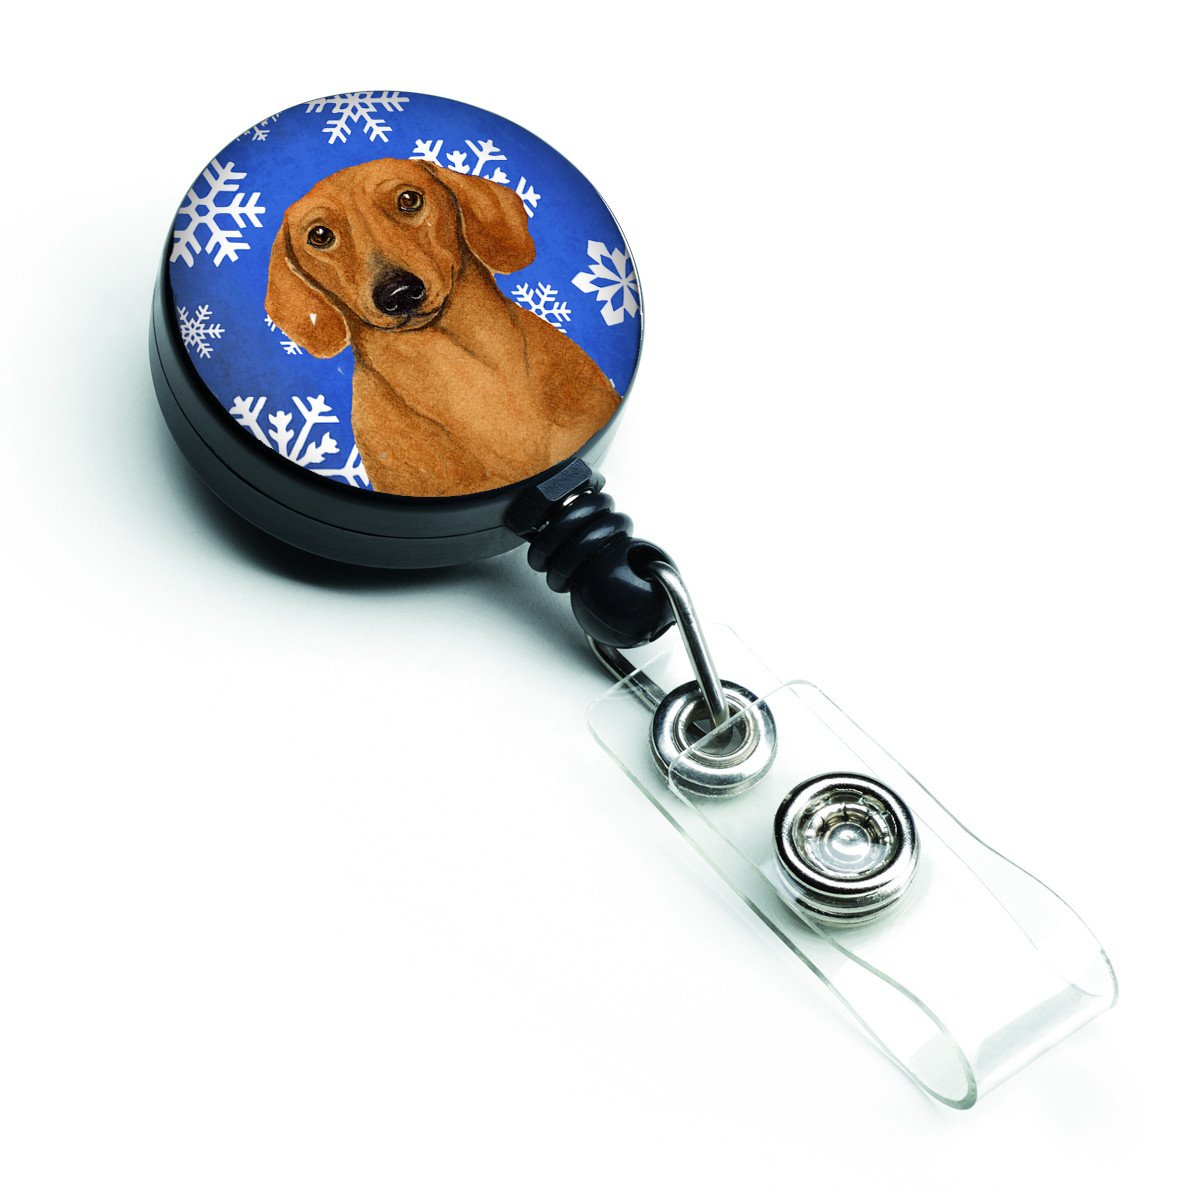 Dachshund Winter Snowflakes Holiday Retractable Badge Reel LH9267BR by Caroline's Treasures